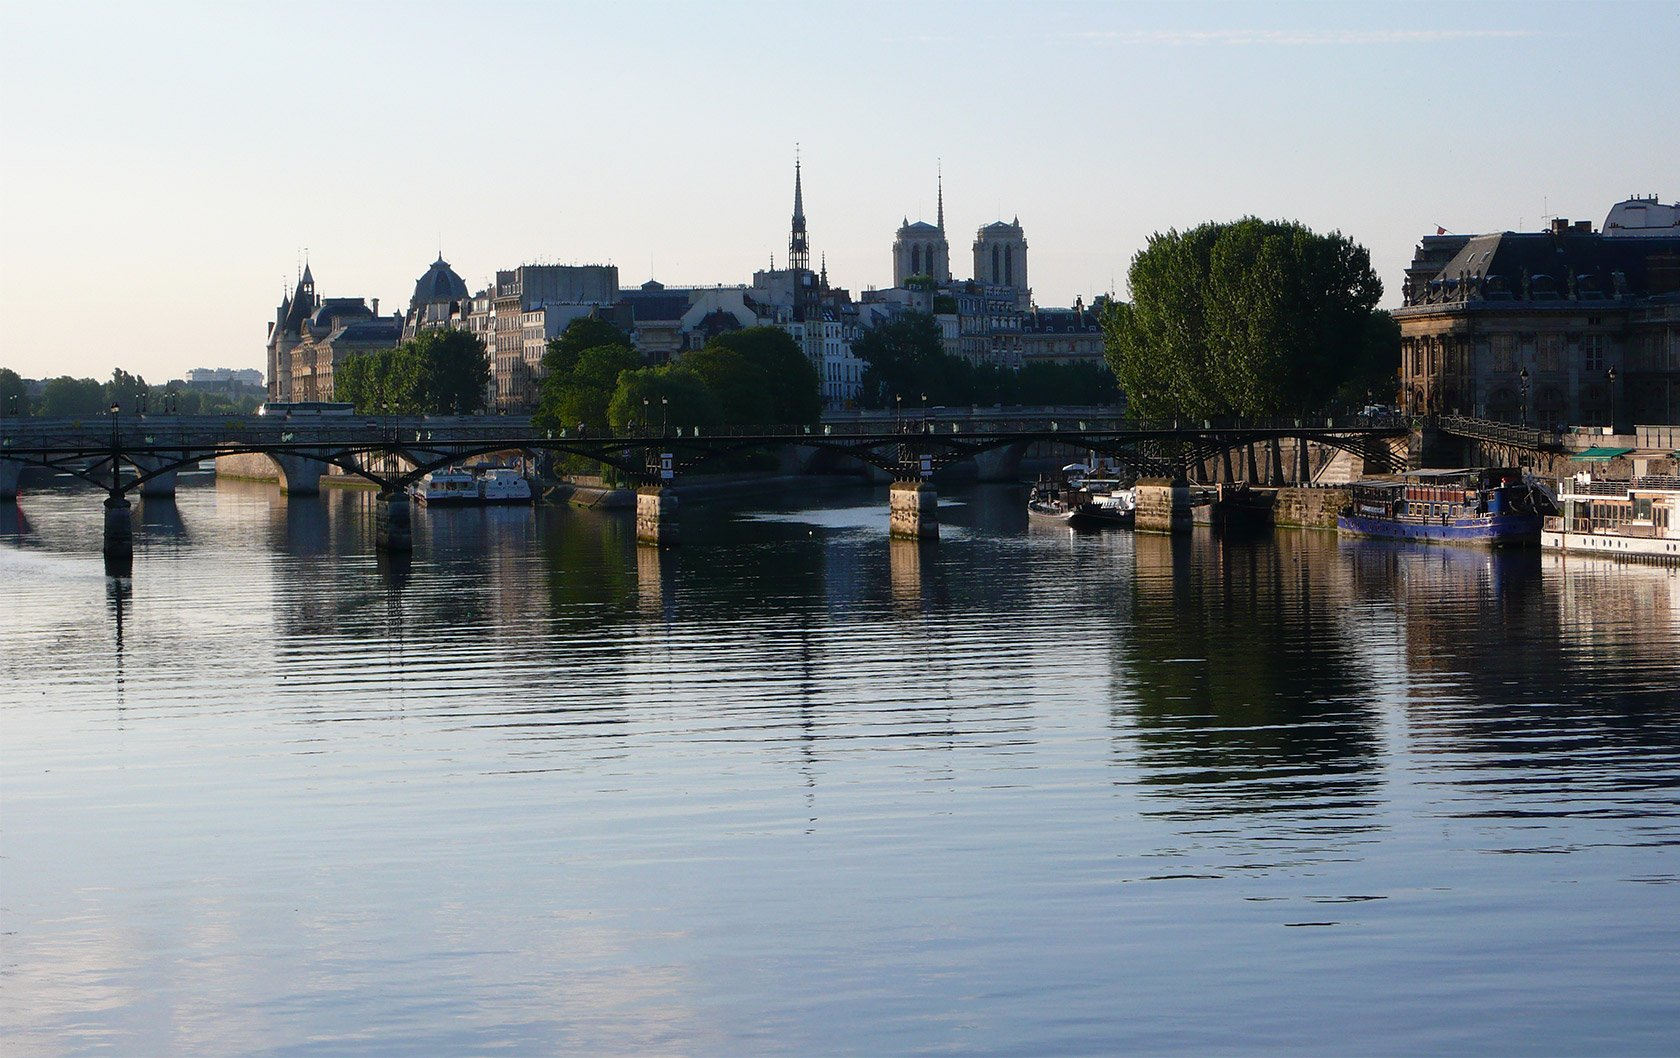 reflections-ile-st-louis-in-the-seine